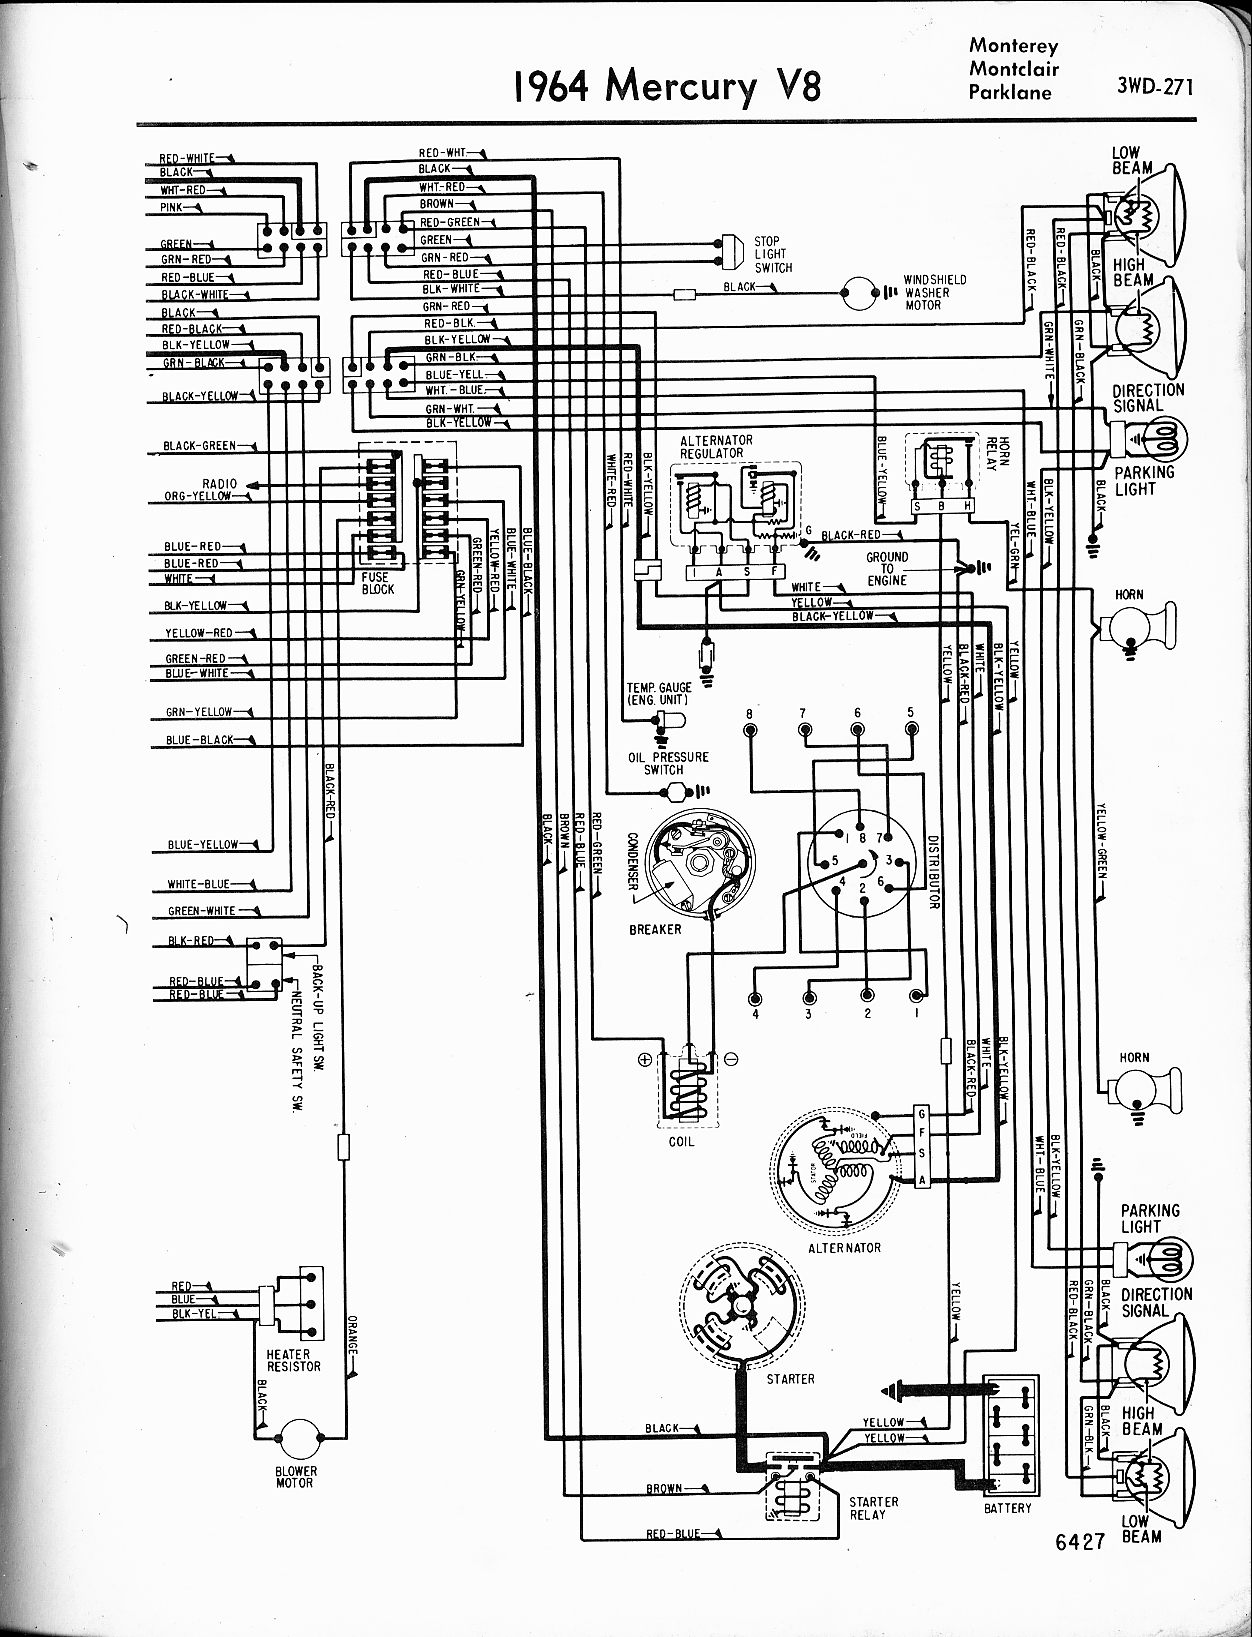 MWire5765 271 mercury wiring diagrams the old car manual project 2004 mercury monterey fuse box diagram at n-0.co